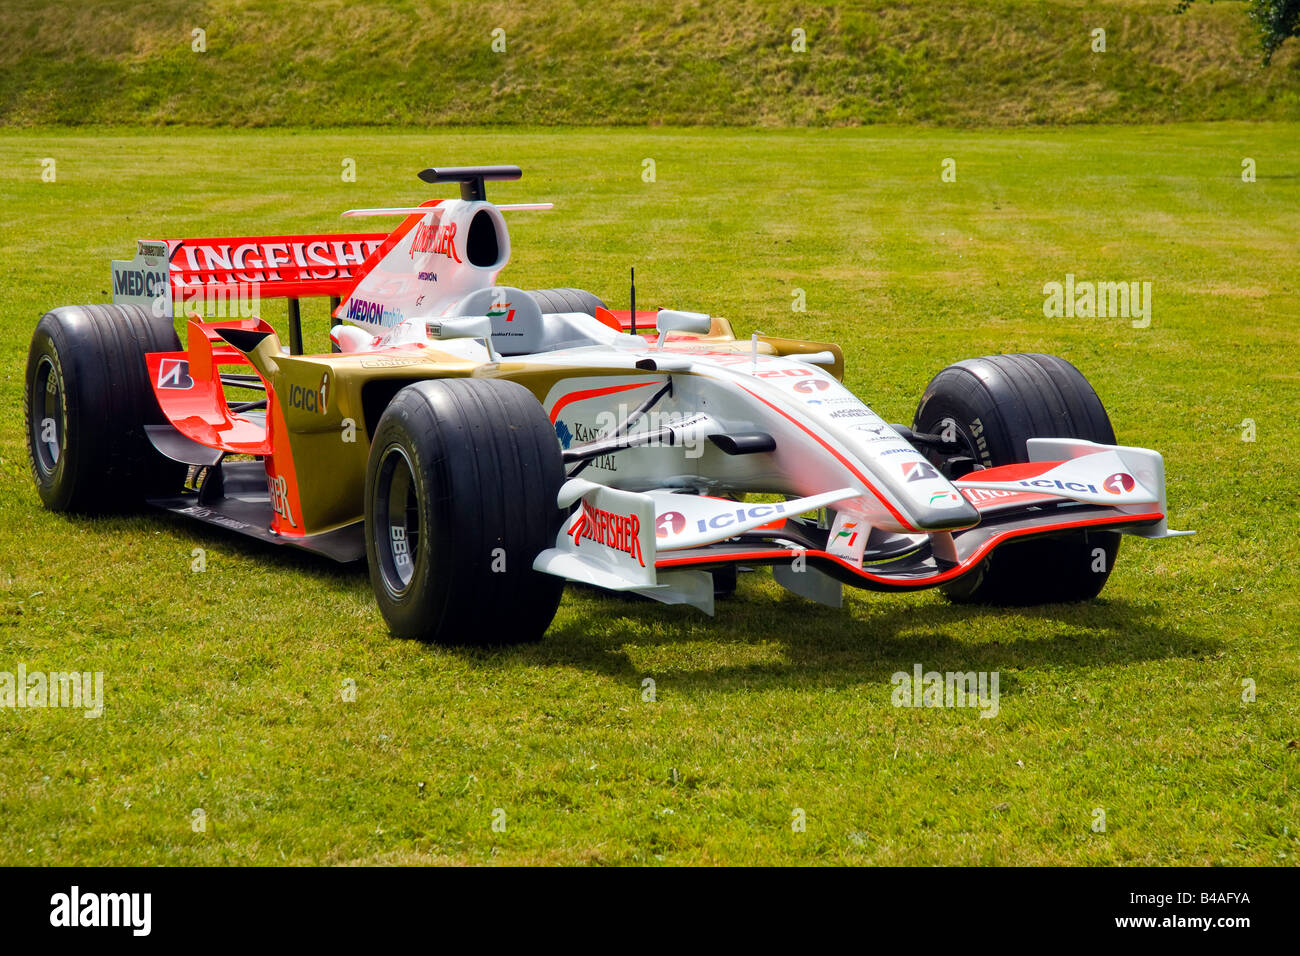 F1 di Formula Uno motor sport Kingfisher Force India Immagini Stock